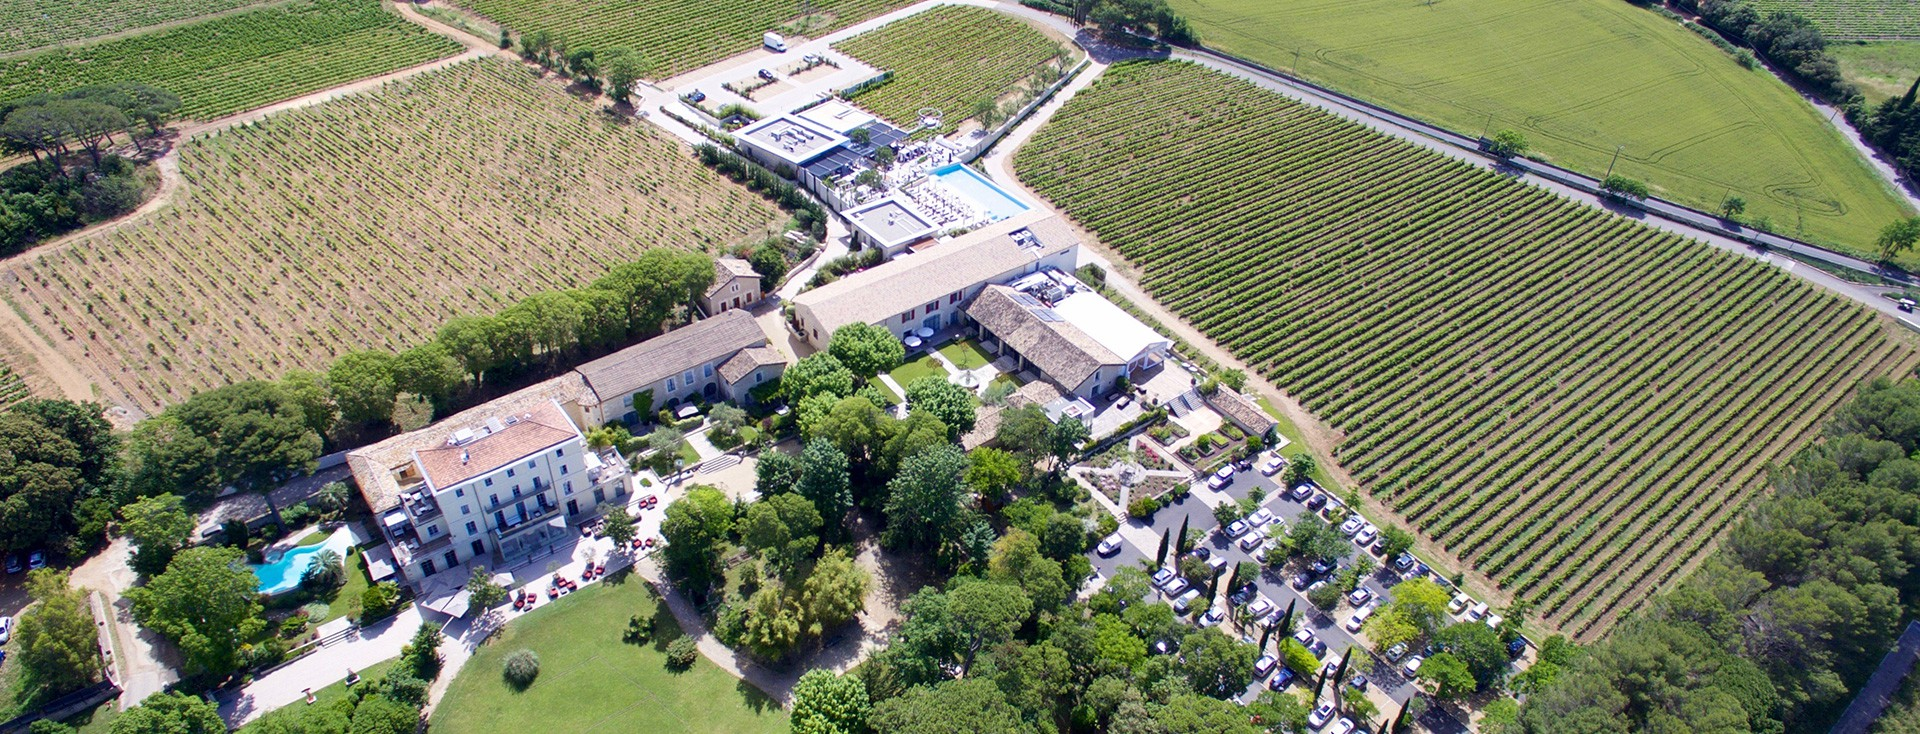 Le Domaine de Verchant, Boutique Hotel in a vineyard in ...